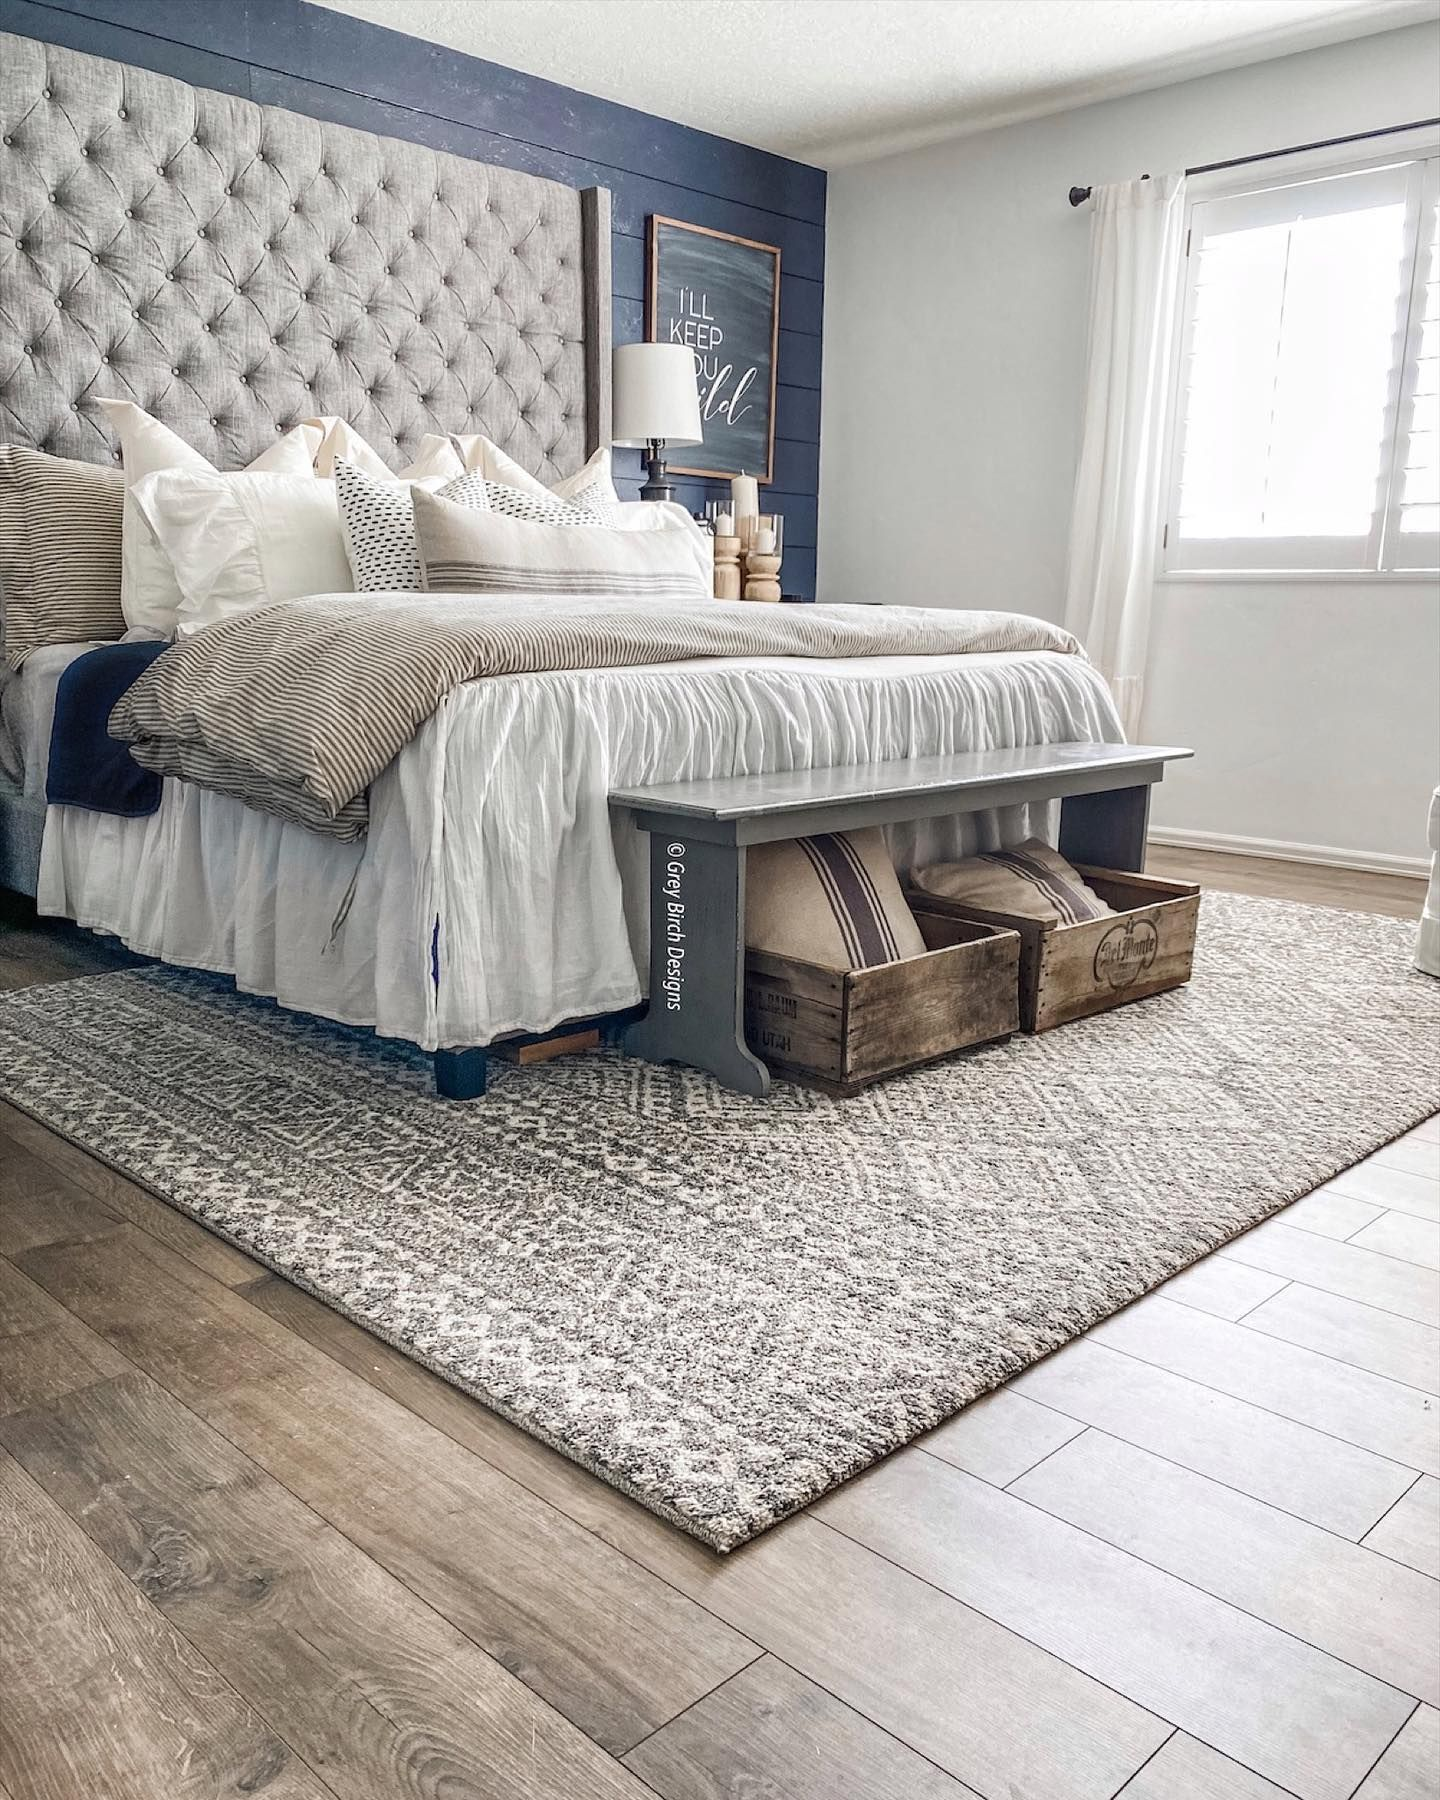 Master Bedroom Ideas In Neutral Whites And Grays Laminate Floors Newhouse Newhome Design Masterbedroom White Gray Interior Design Interior Home